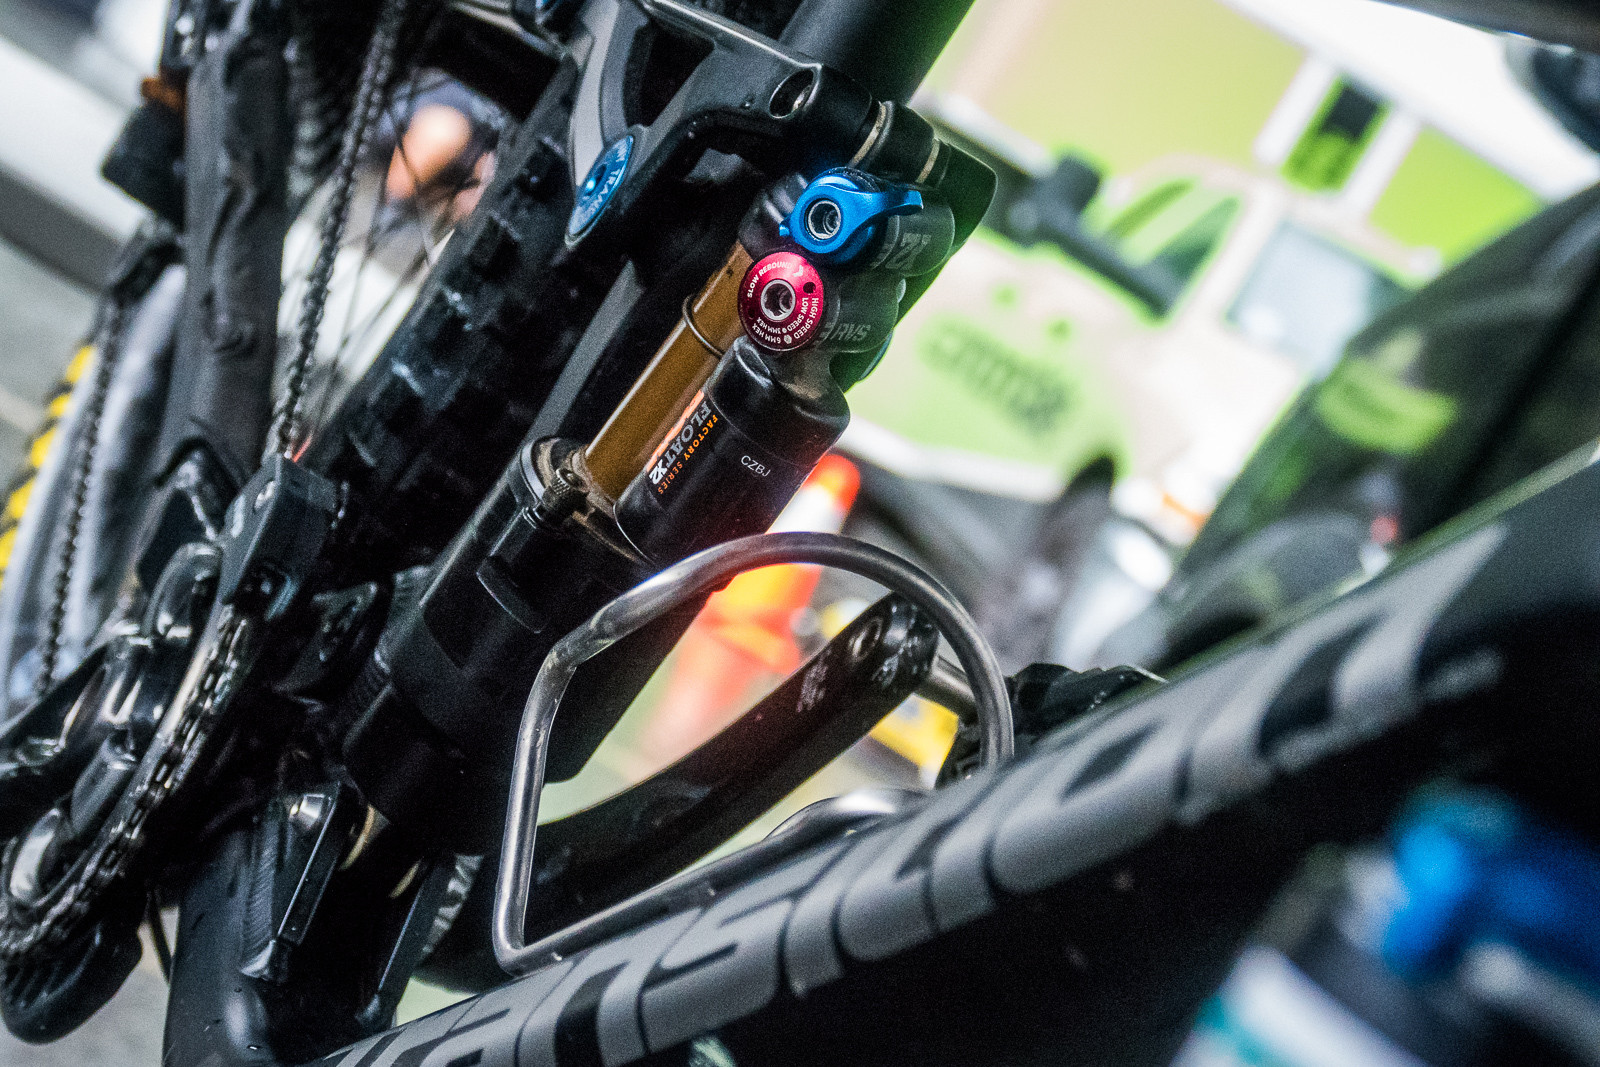 Prototype FOX Float X2 Propedal Lever - PIT BITS - New Products and Prototypes at Crankworx Whistler - Mountain Biking Pictures - Vital MTB